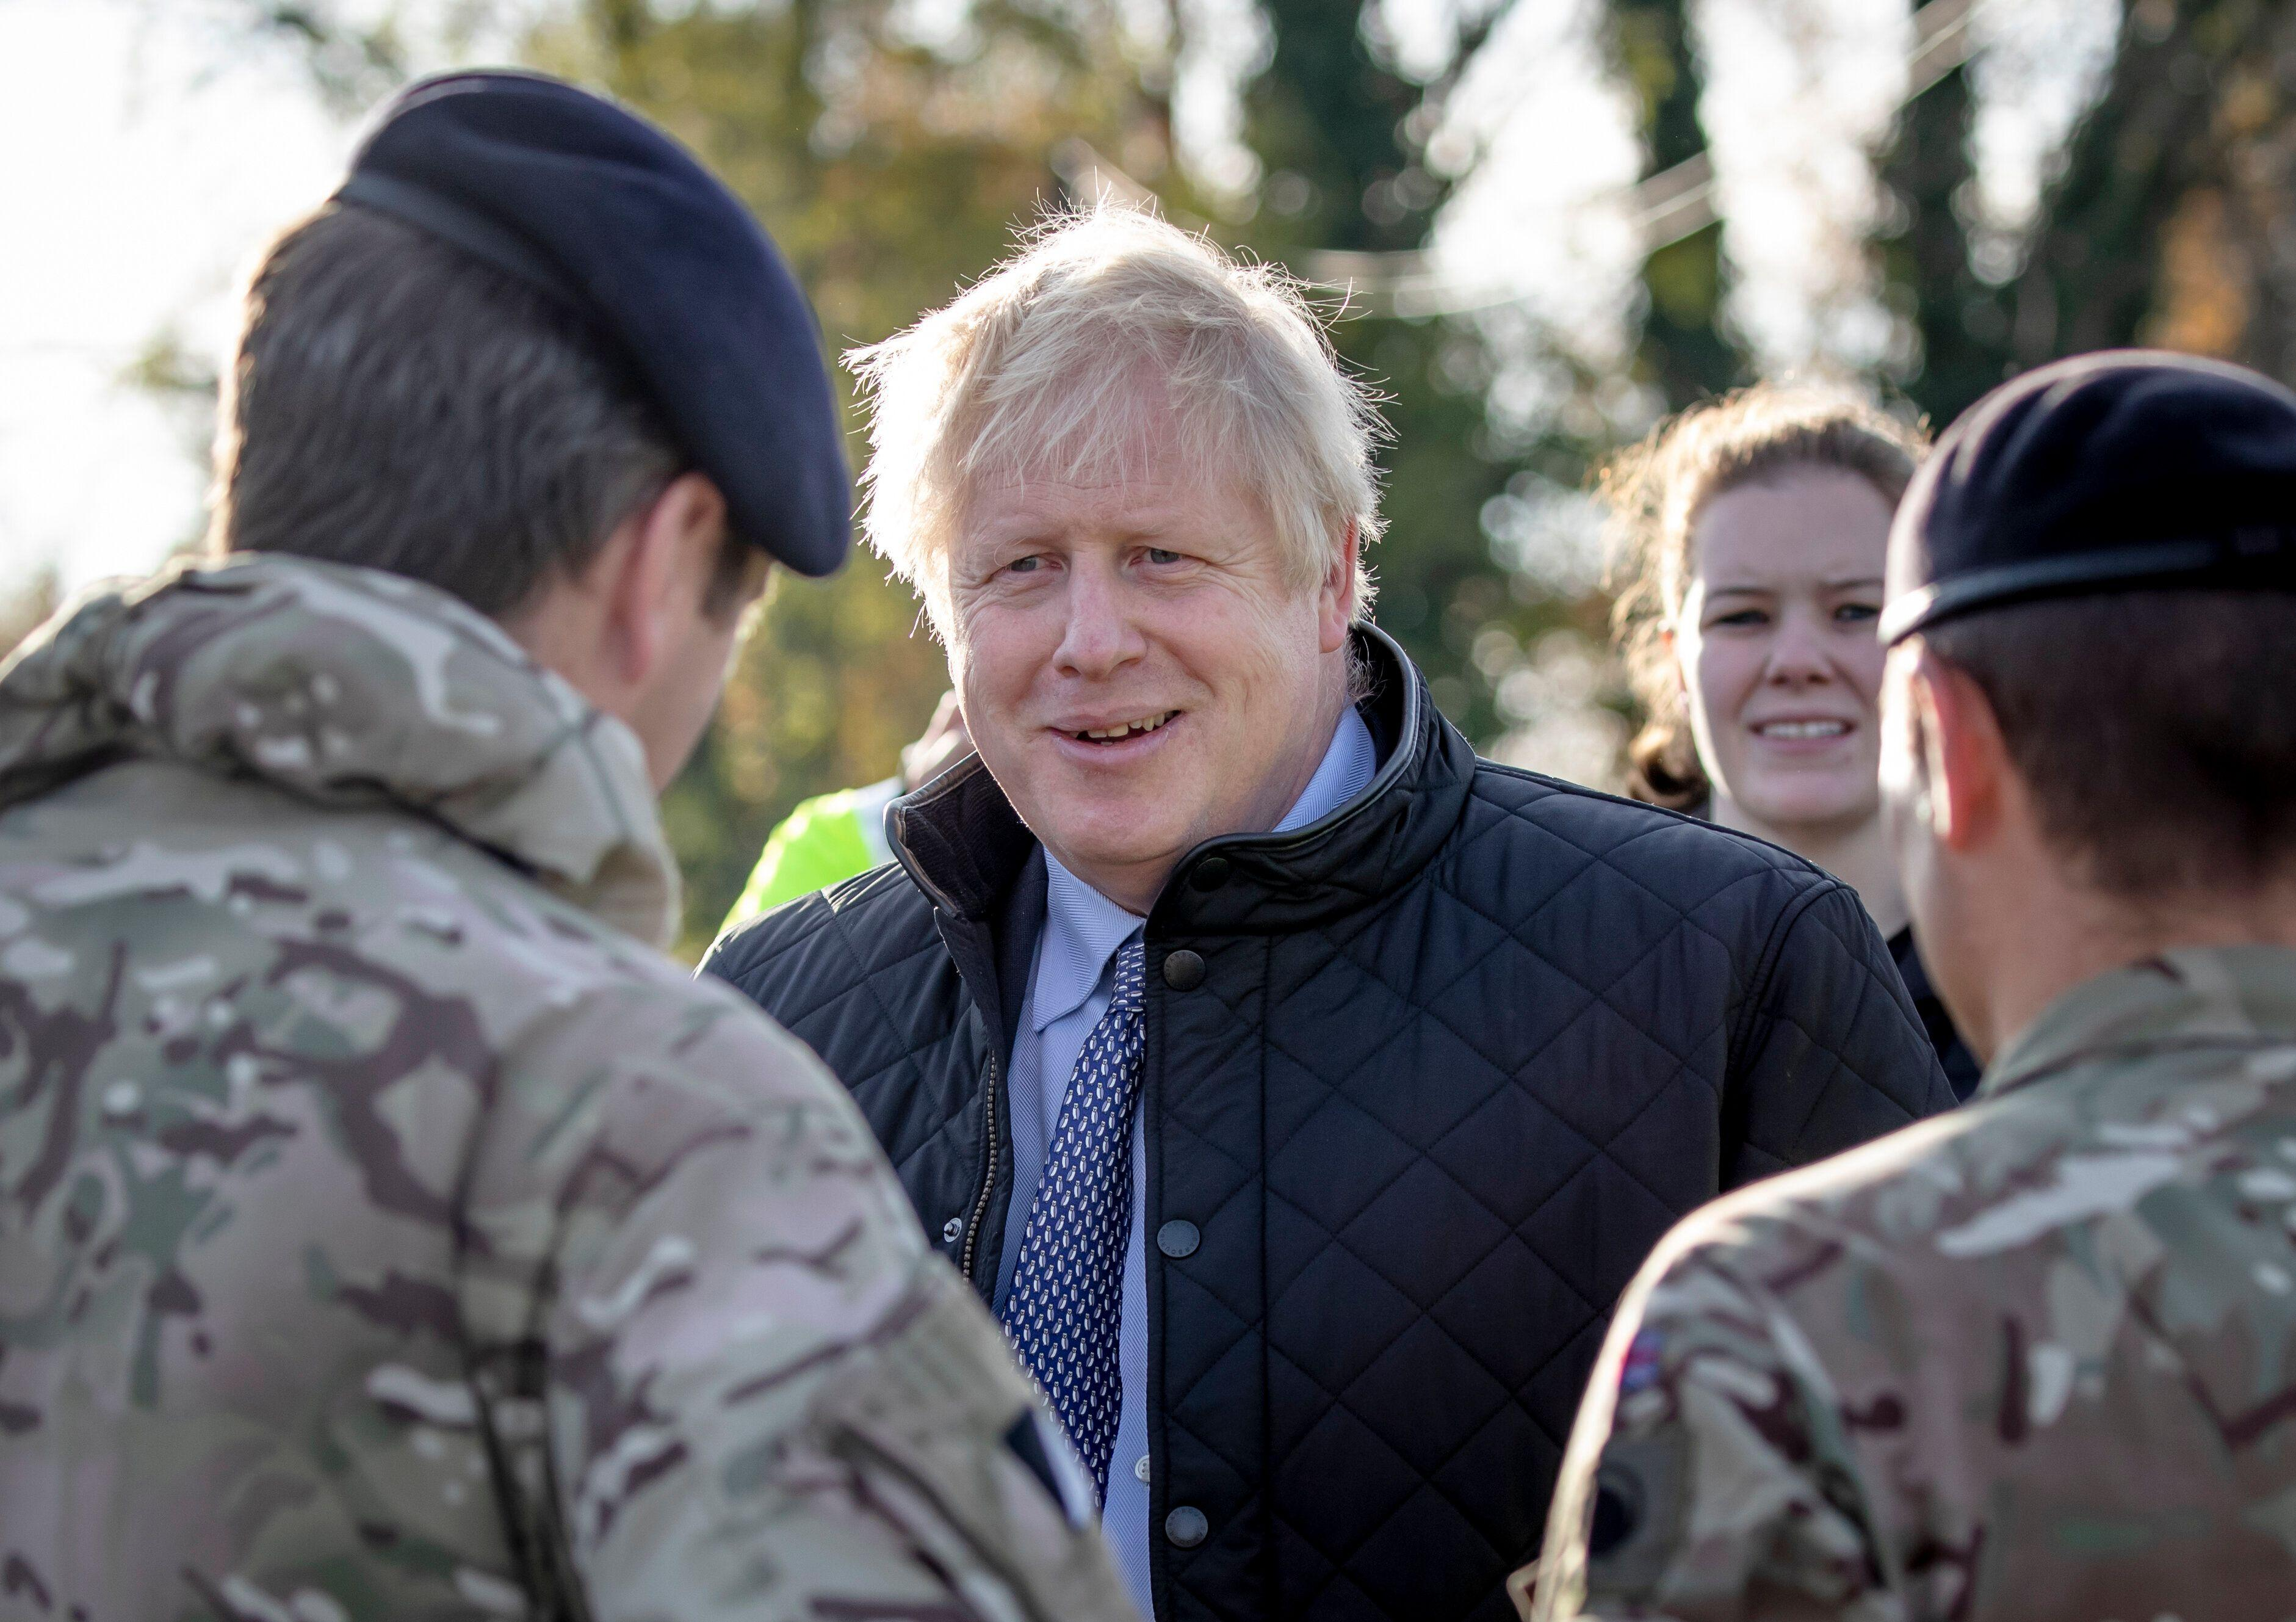 Life Got Worse Under The Tories, But Johnson Will Sort Brexit Logjam, Undecided Voters Say